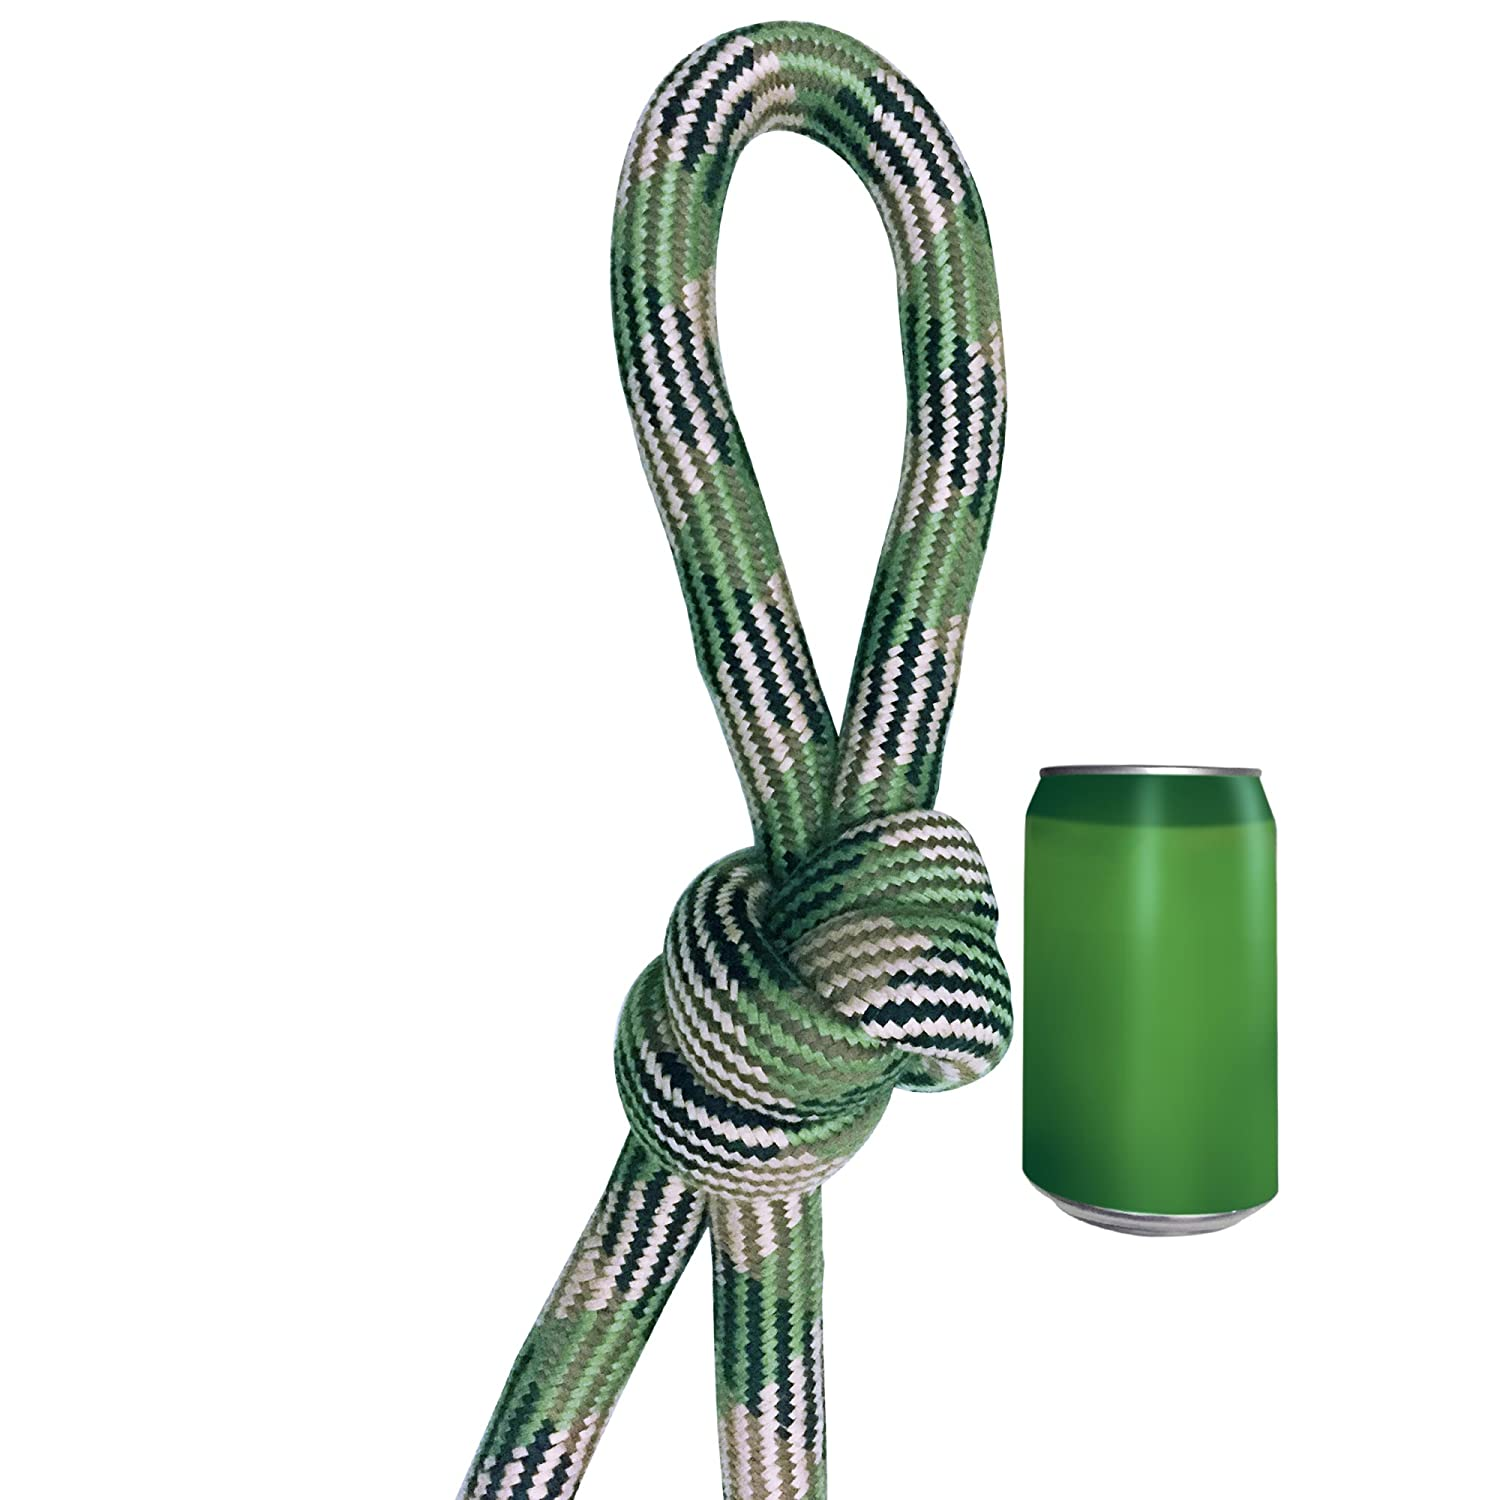 SatisPet Dog Toys Durable & Irresistible Chew Rope Toy for